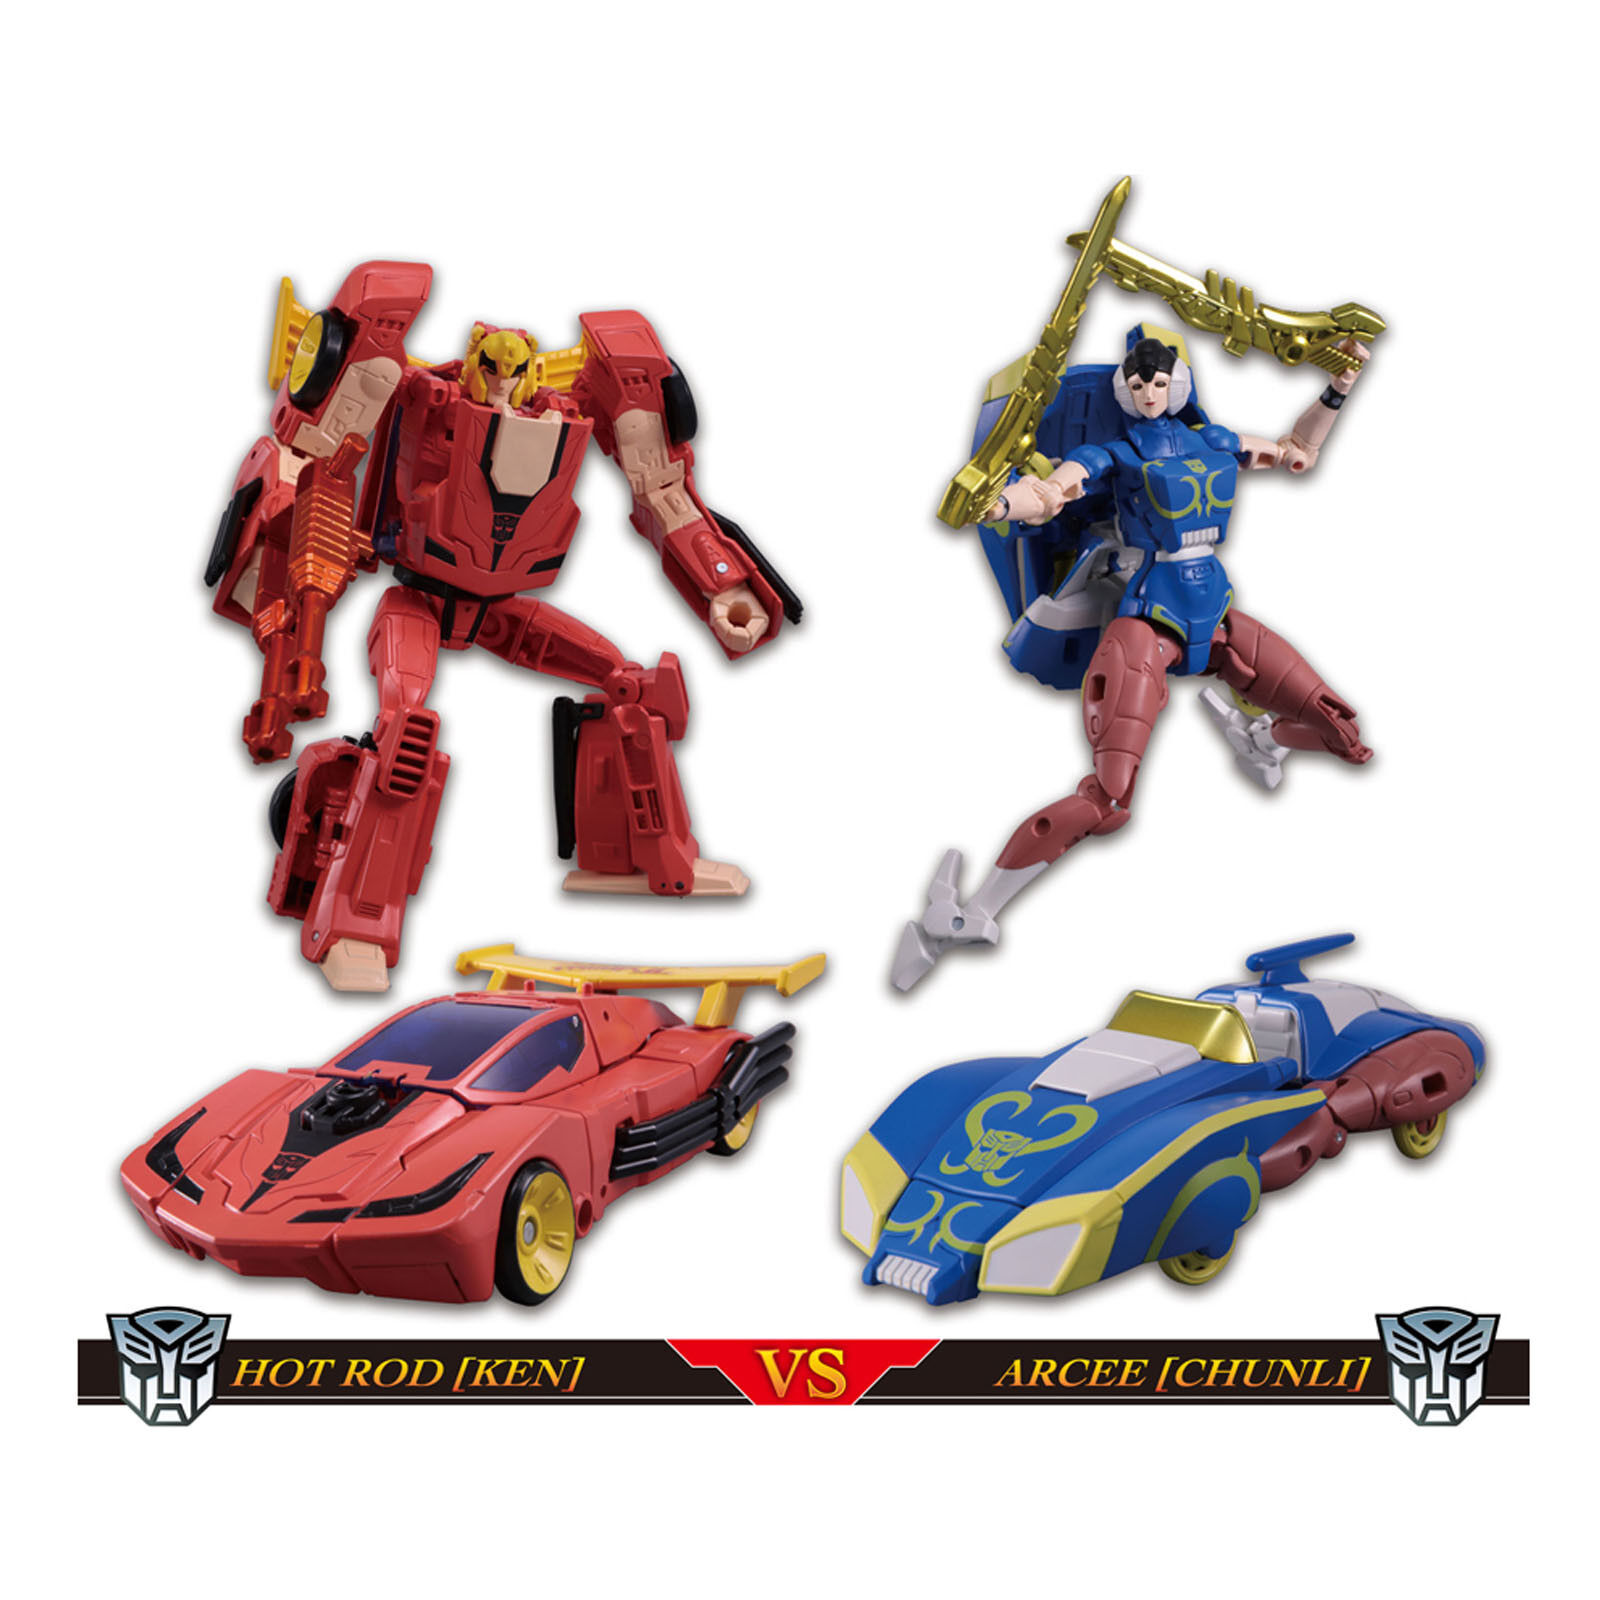 Transformers x Street Fighter2 HOT RODIMUS Ken VS ARCEE ChunLi Action Figure Toy